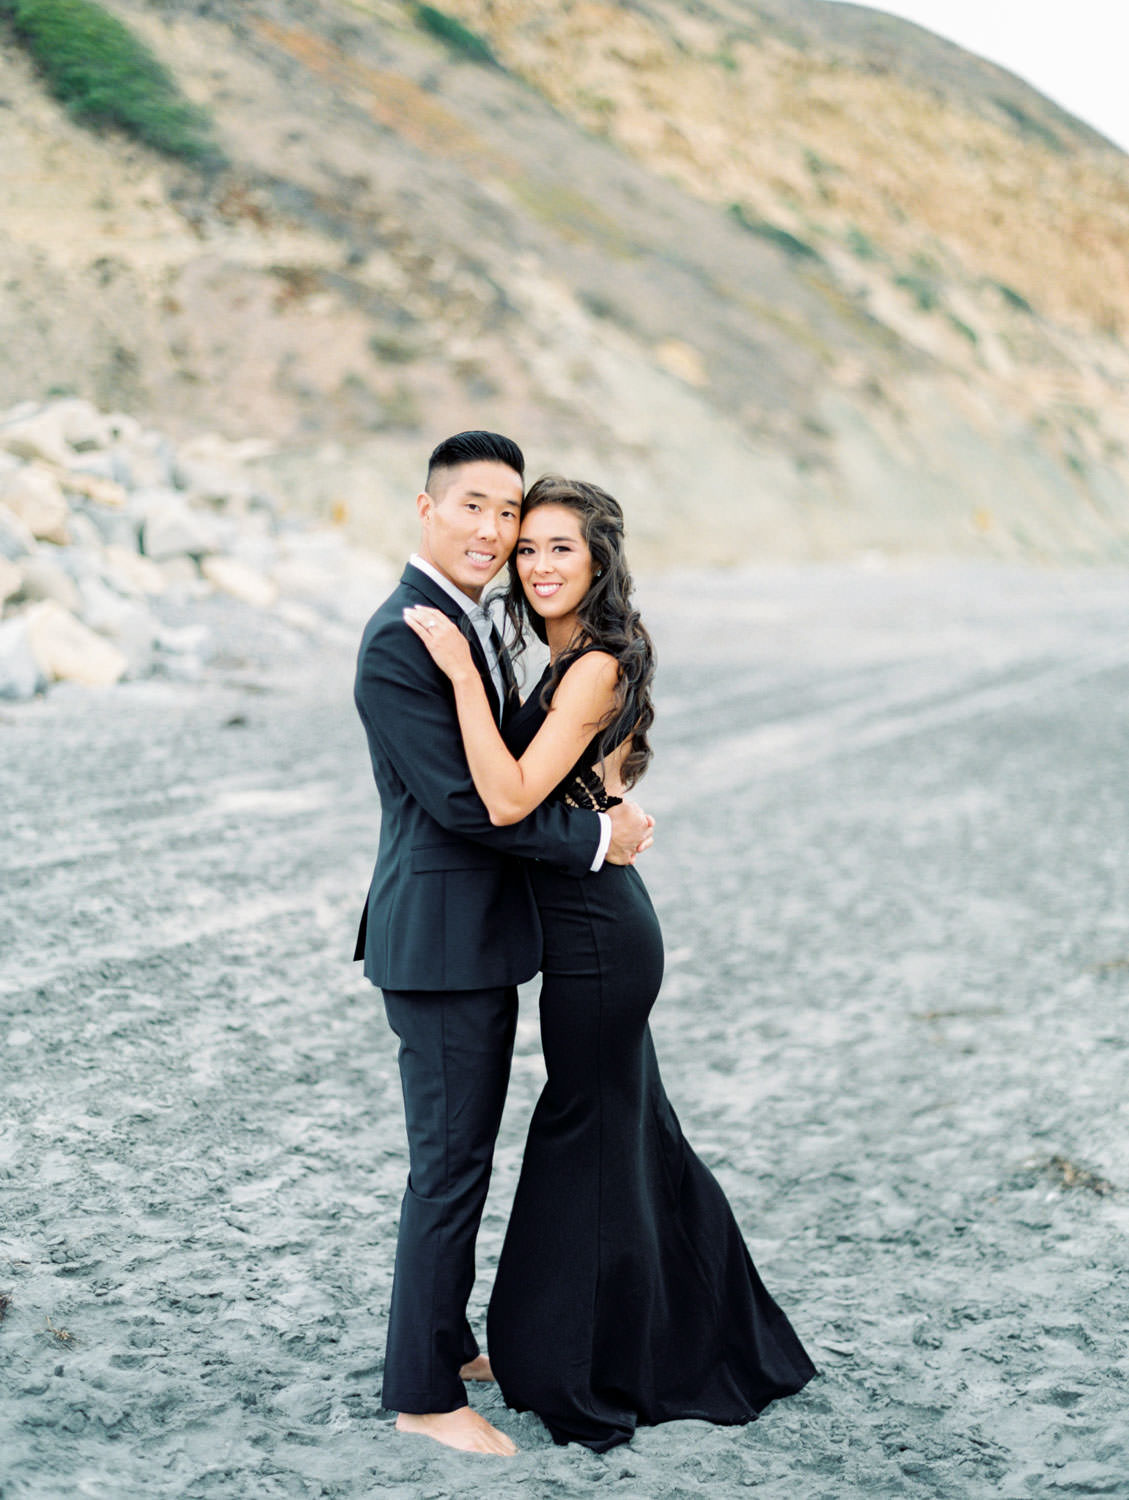 Smiling at the camera. Engagement photo outfit ideas with a formal black suit and black dress. Torrey Pines beach photos on film by Cavin Elizabeth Photography.